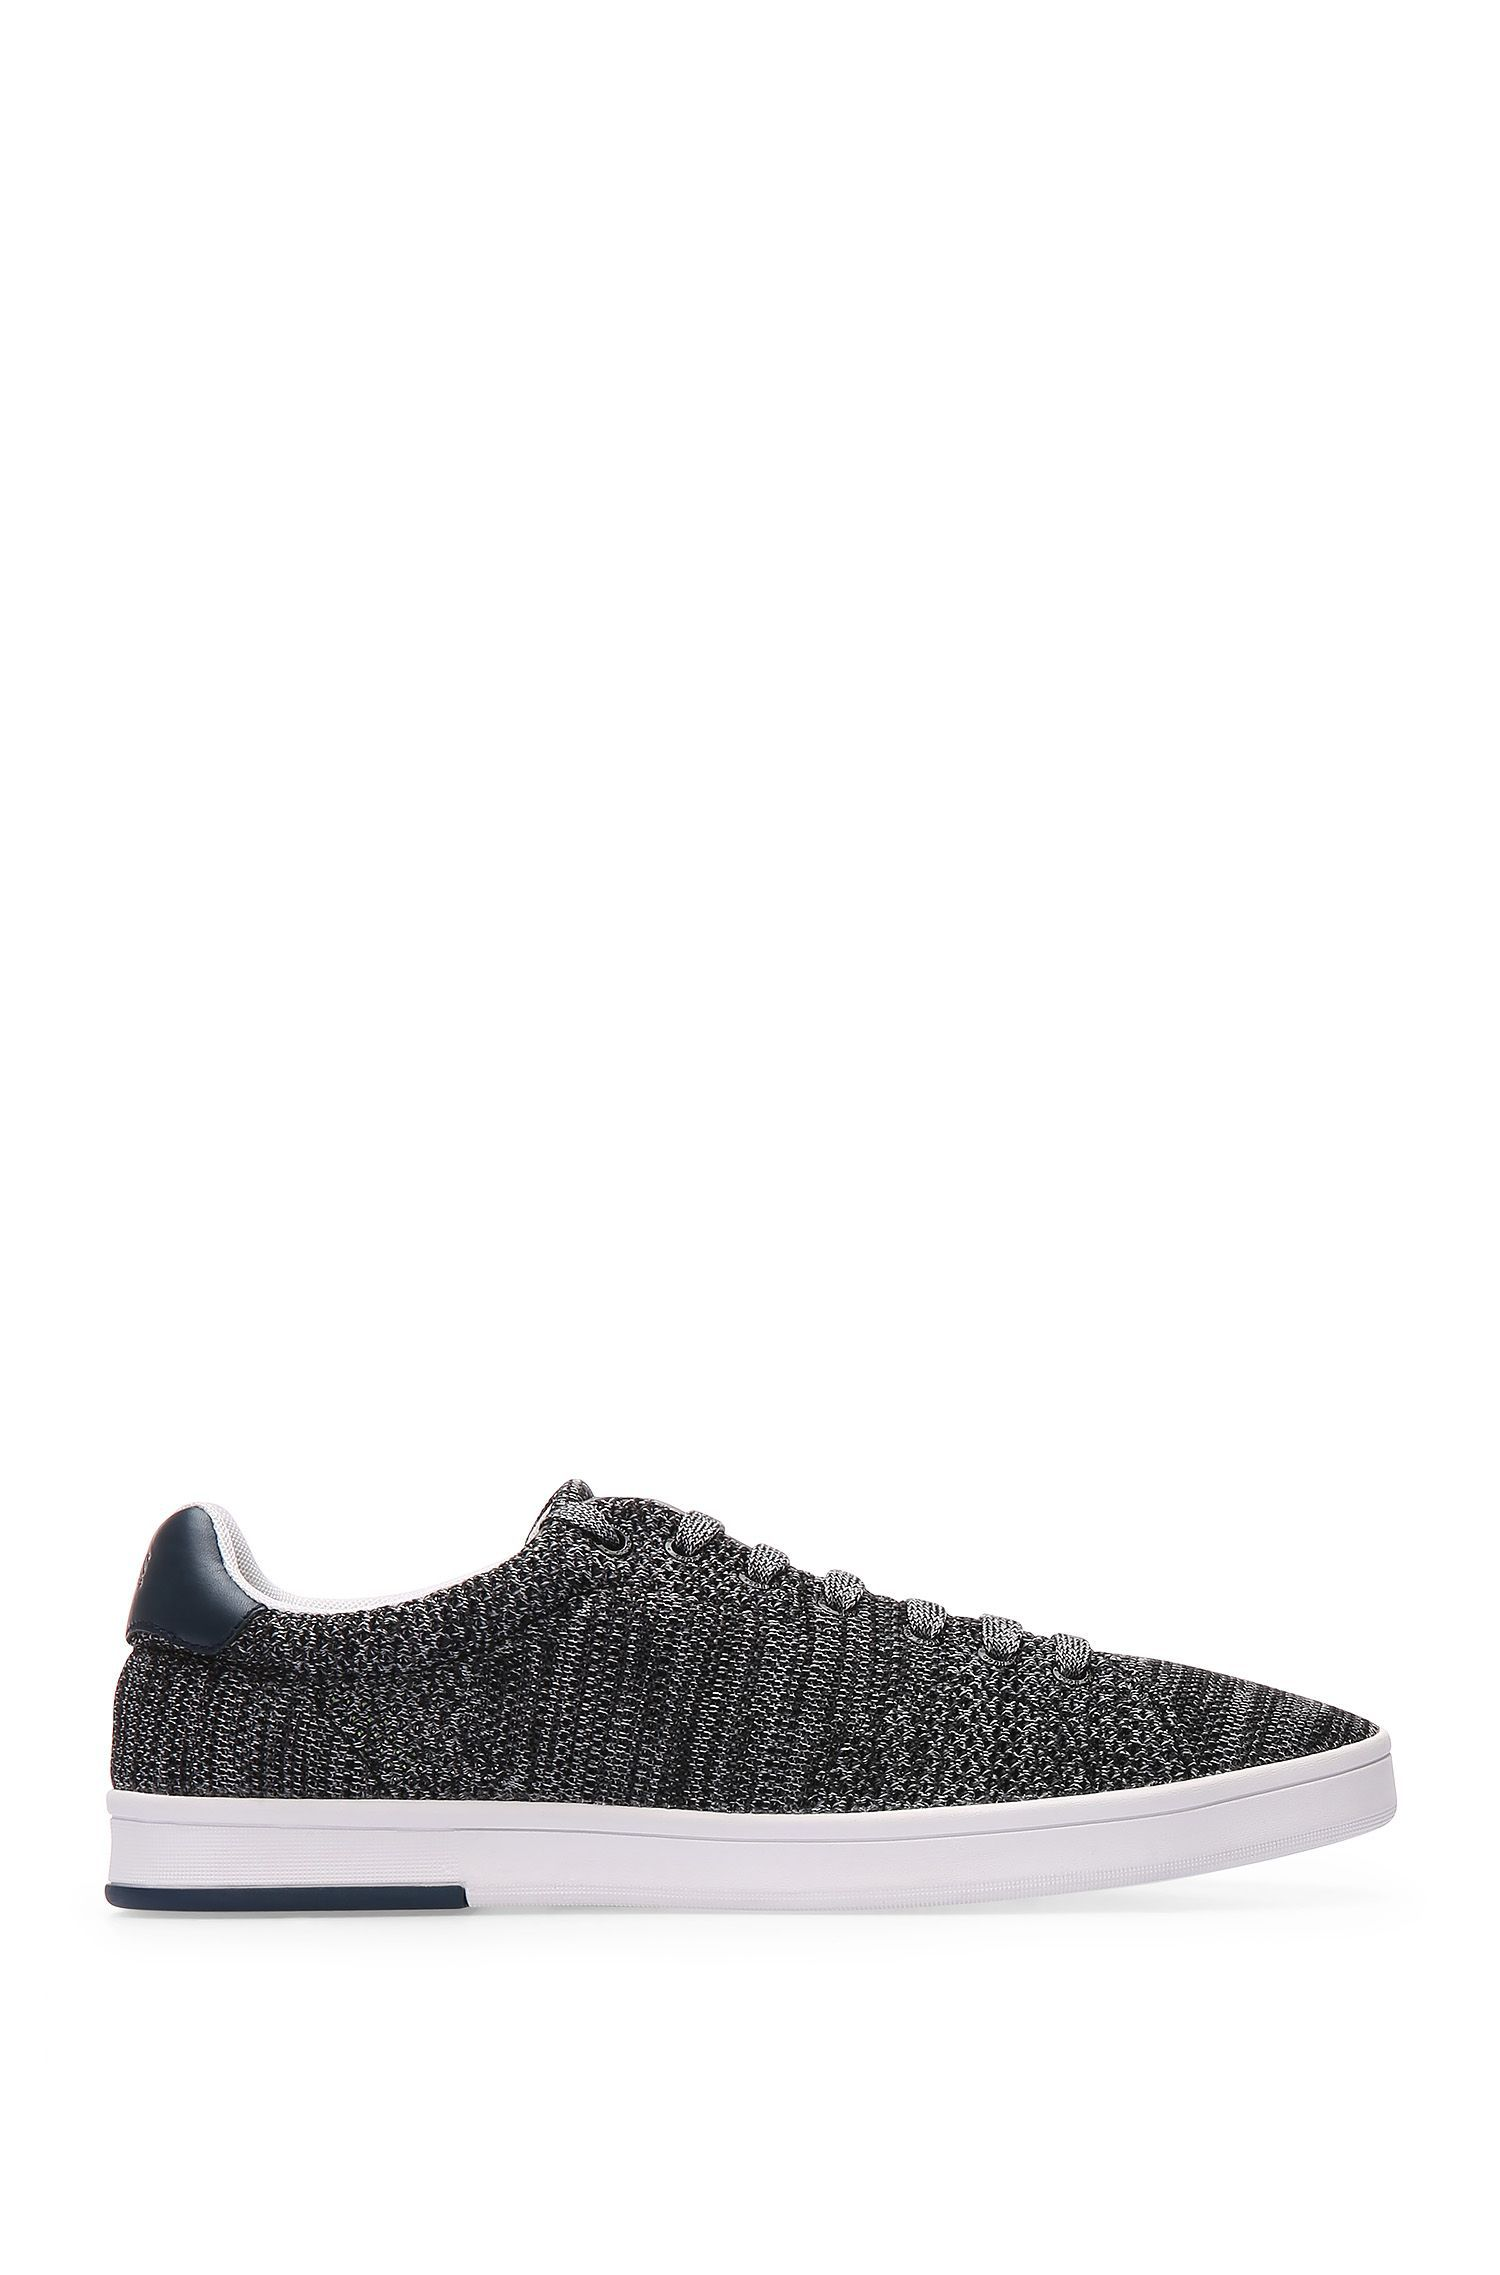 Trainers in knitted-effect textile with leather trim: 'Rayadv_Tenn_sykn'